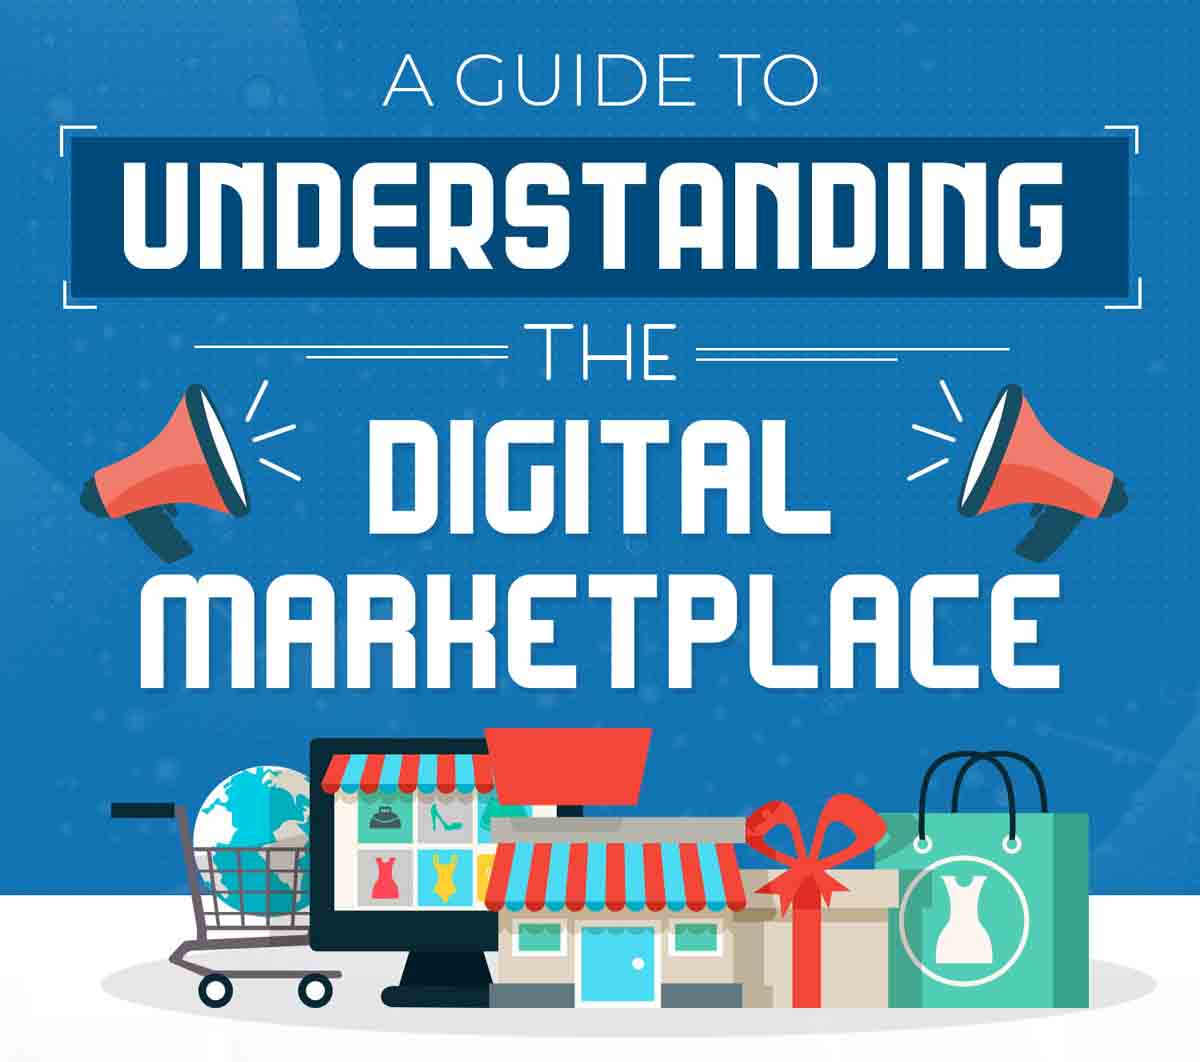 A Guide to Understanding the Digital Marketplace